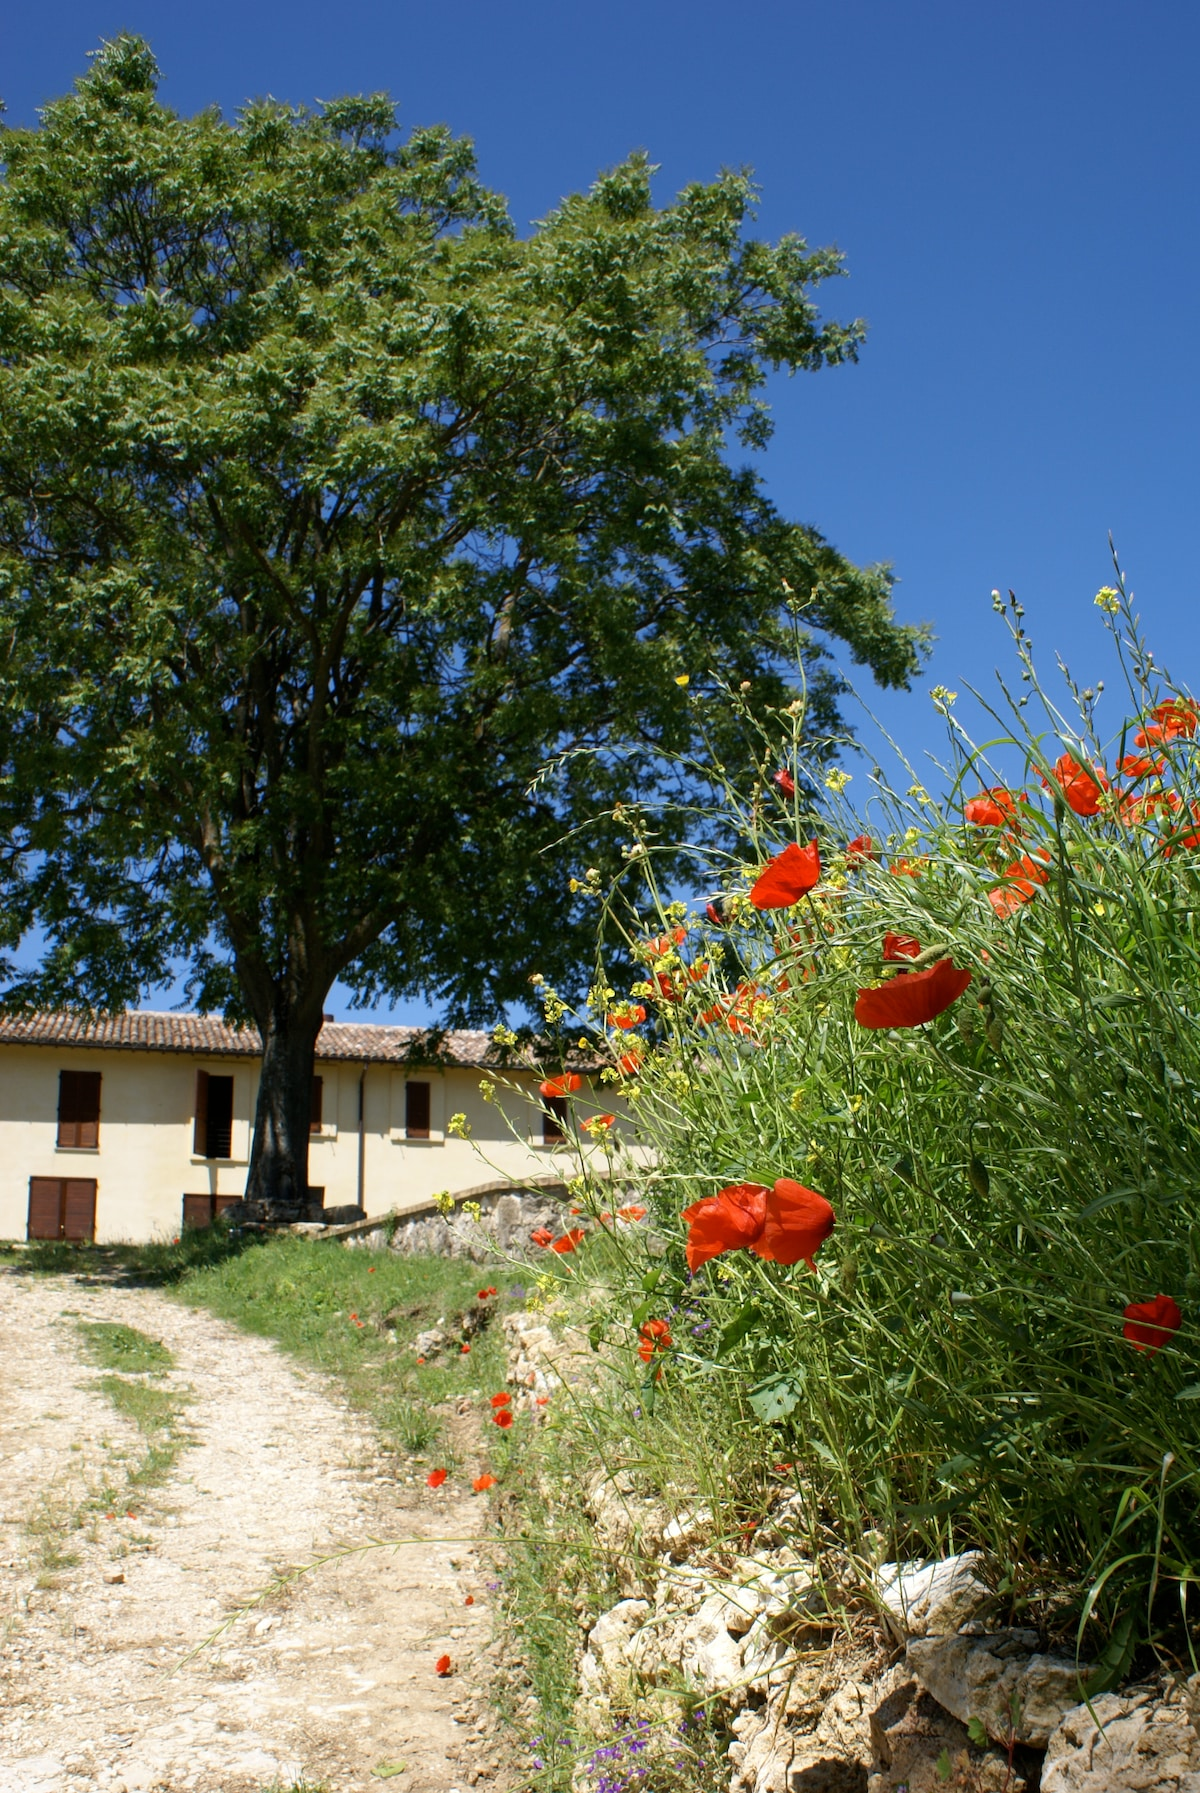 Enjoy your stay with us in Todi